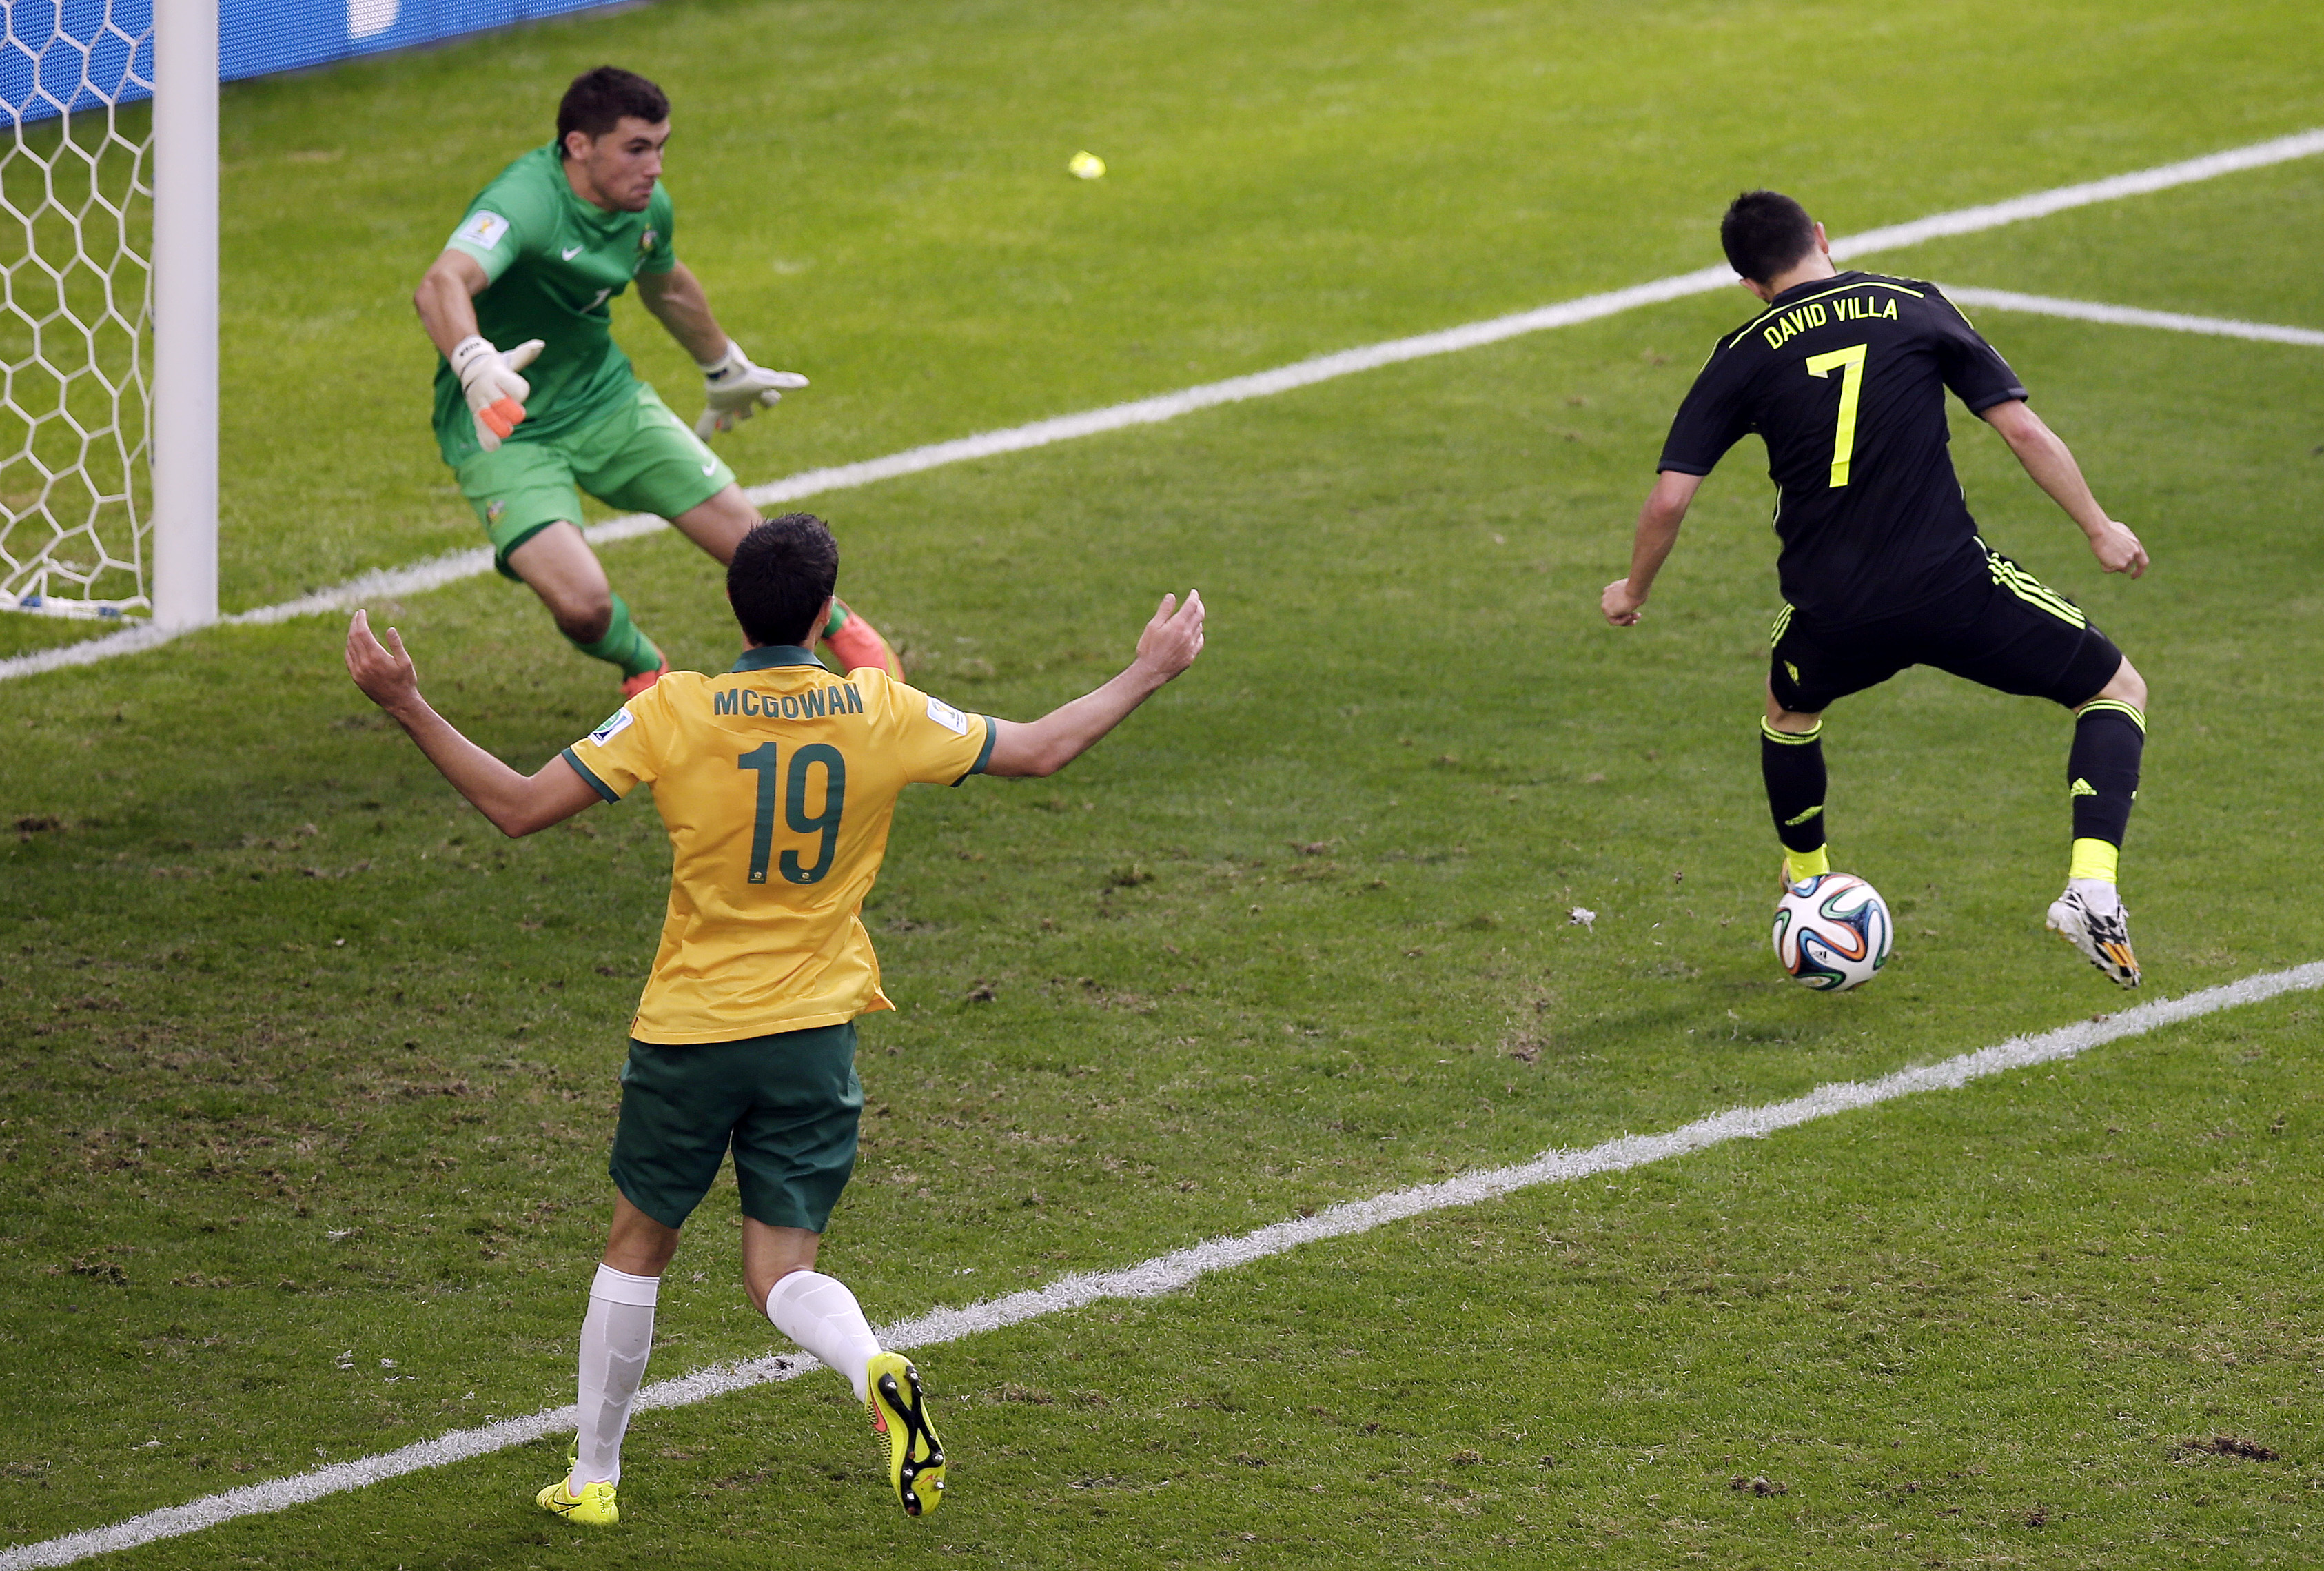 Spain's David Villa scores the team's first goal during the group B World Cup soccer match between Australia and Spain at the Arena da Baixada in Curitiba, Brazil on June 23, 2014.